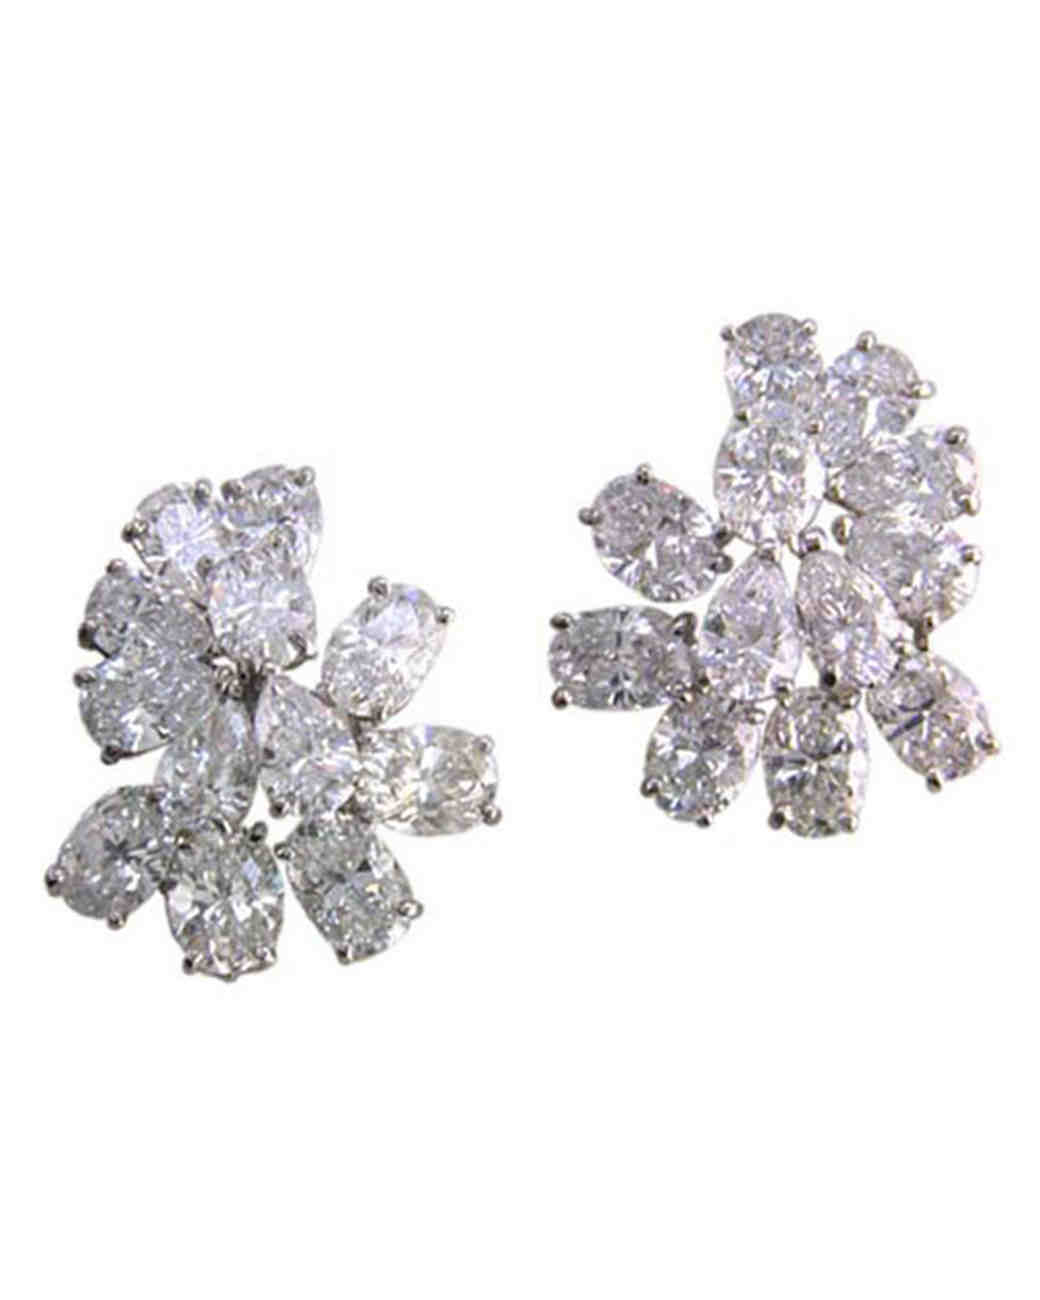 heyman_ohb_705621_plat_dia_earrings.jpg